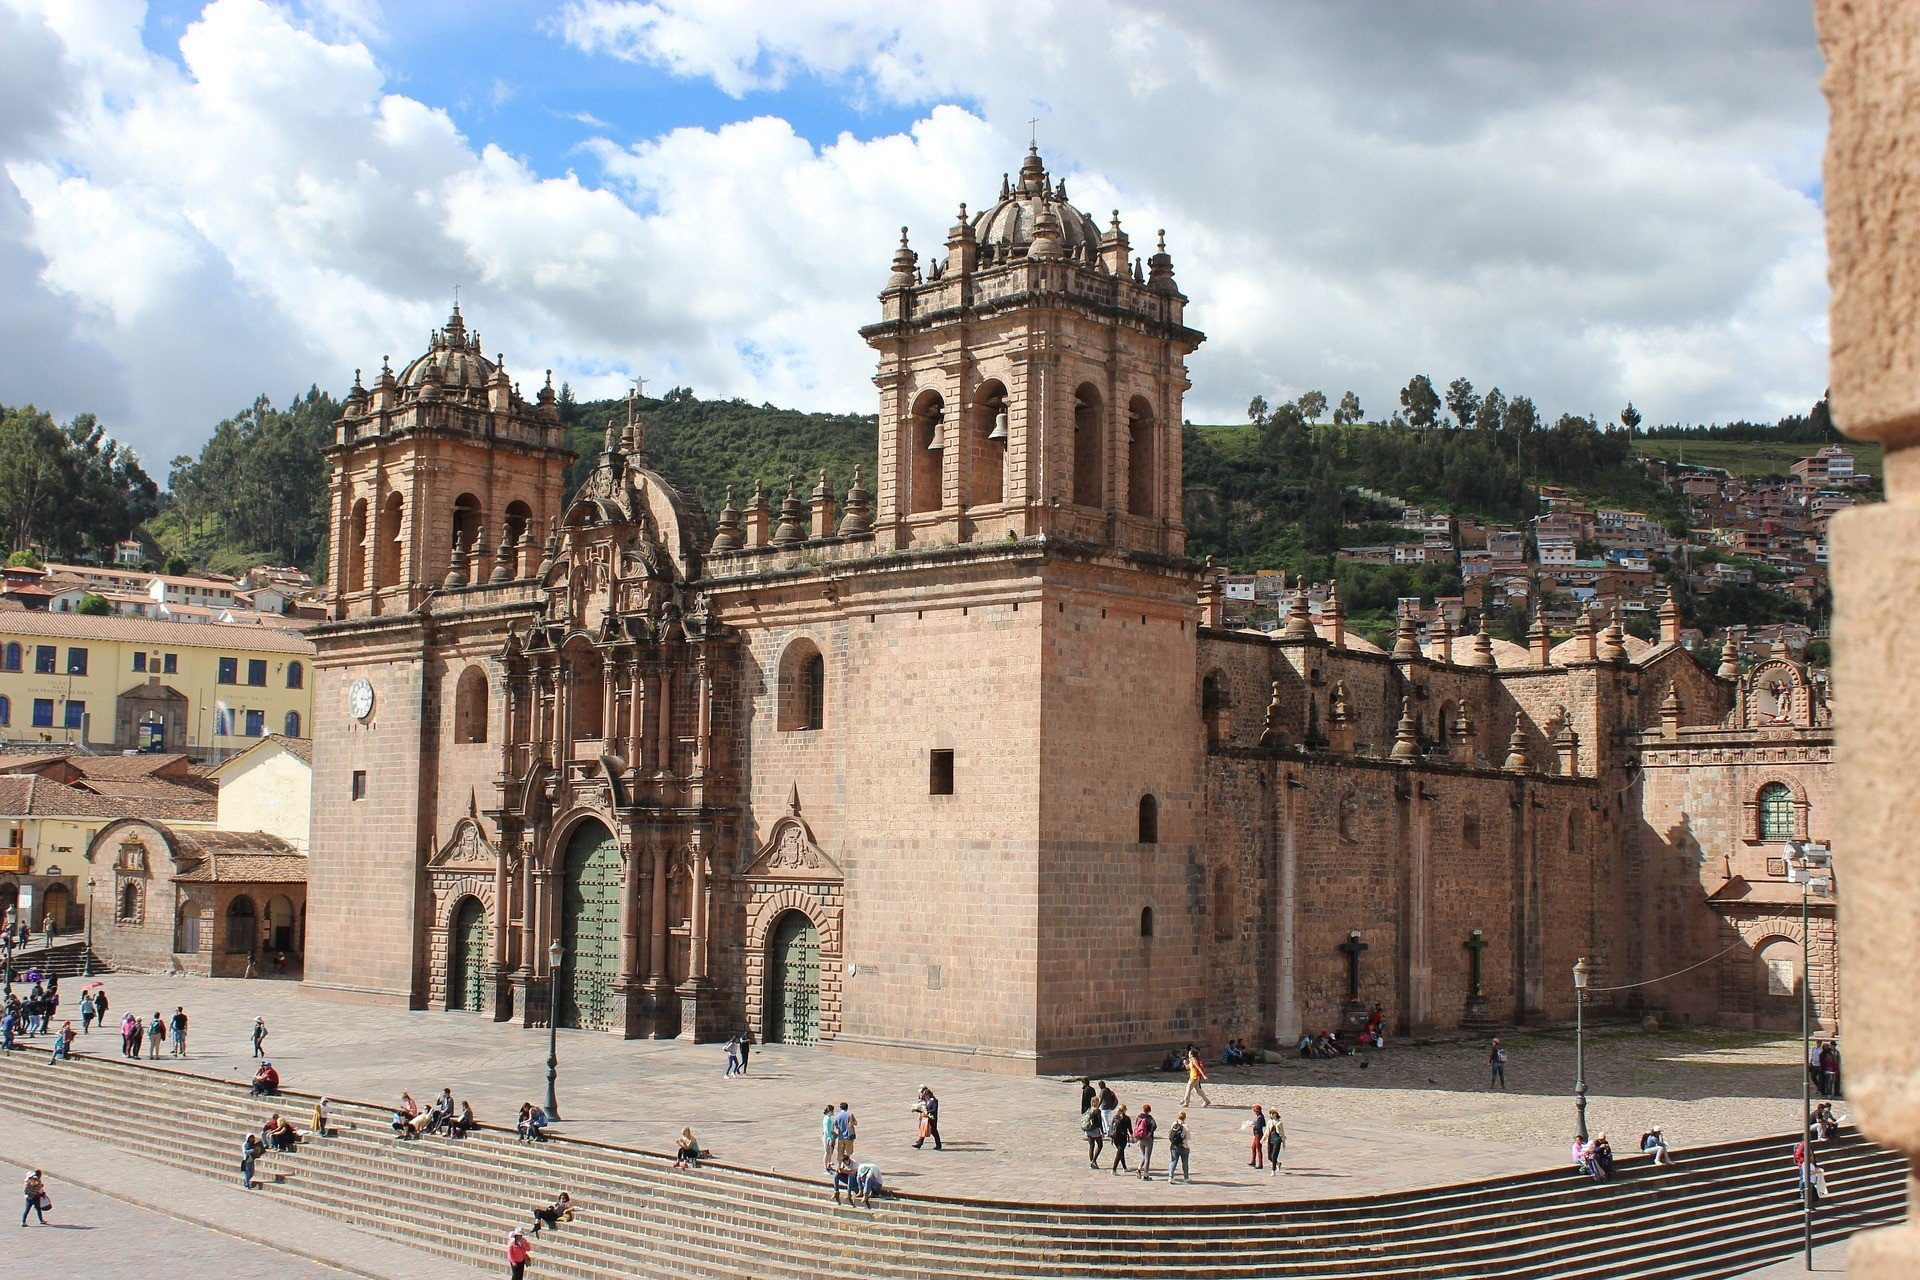 Cusco's architecture is worth checking out.